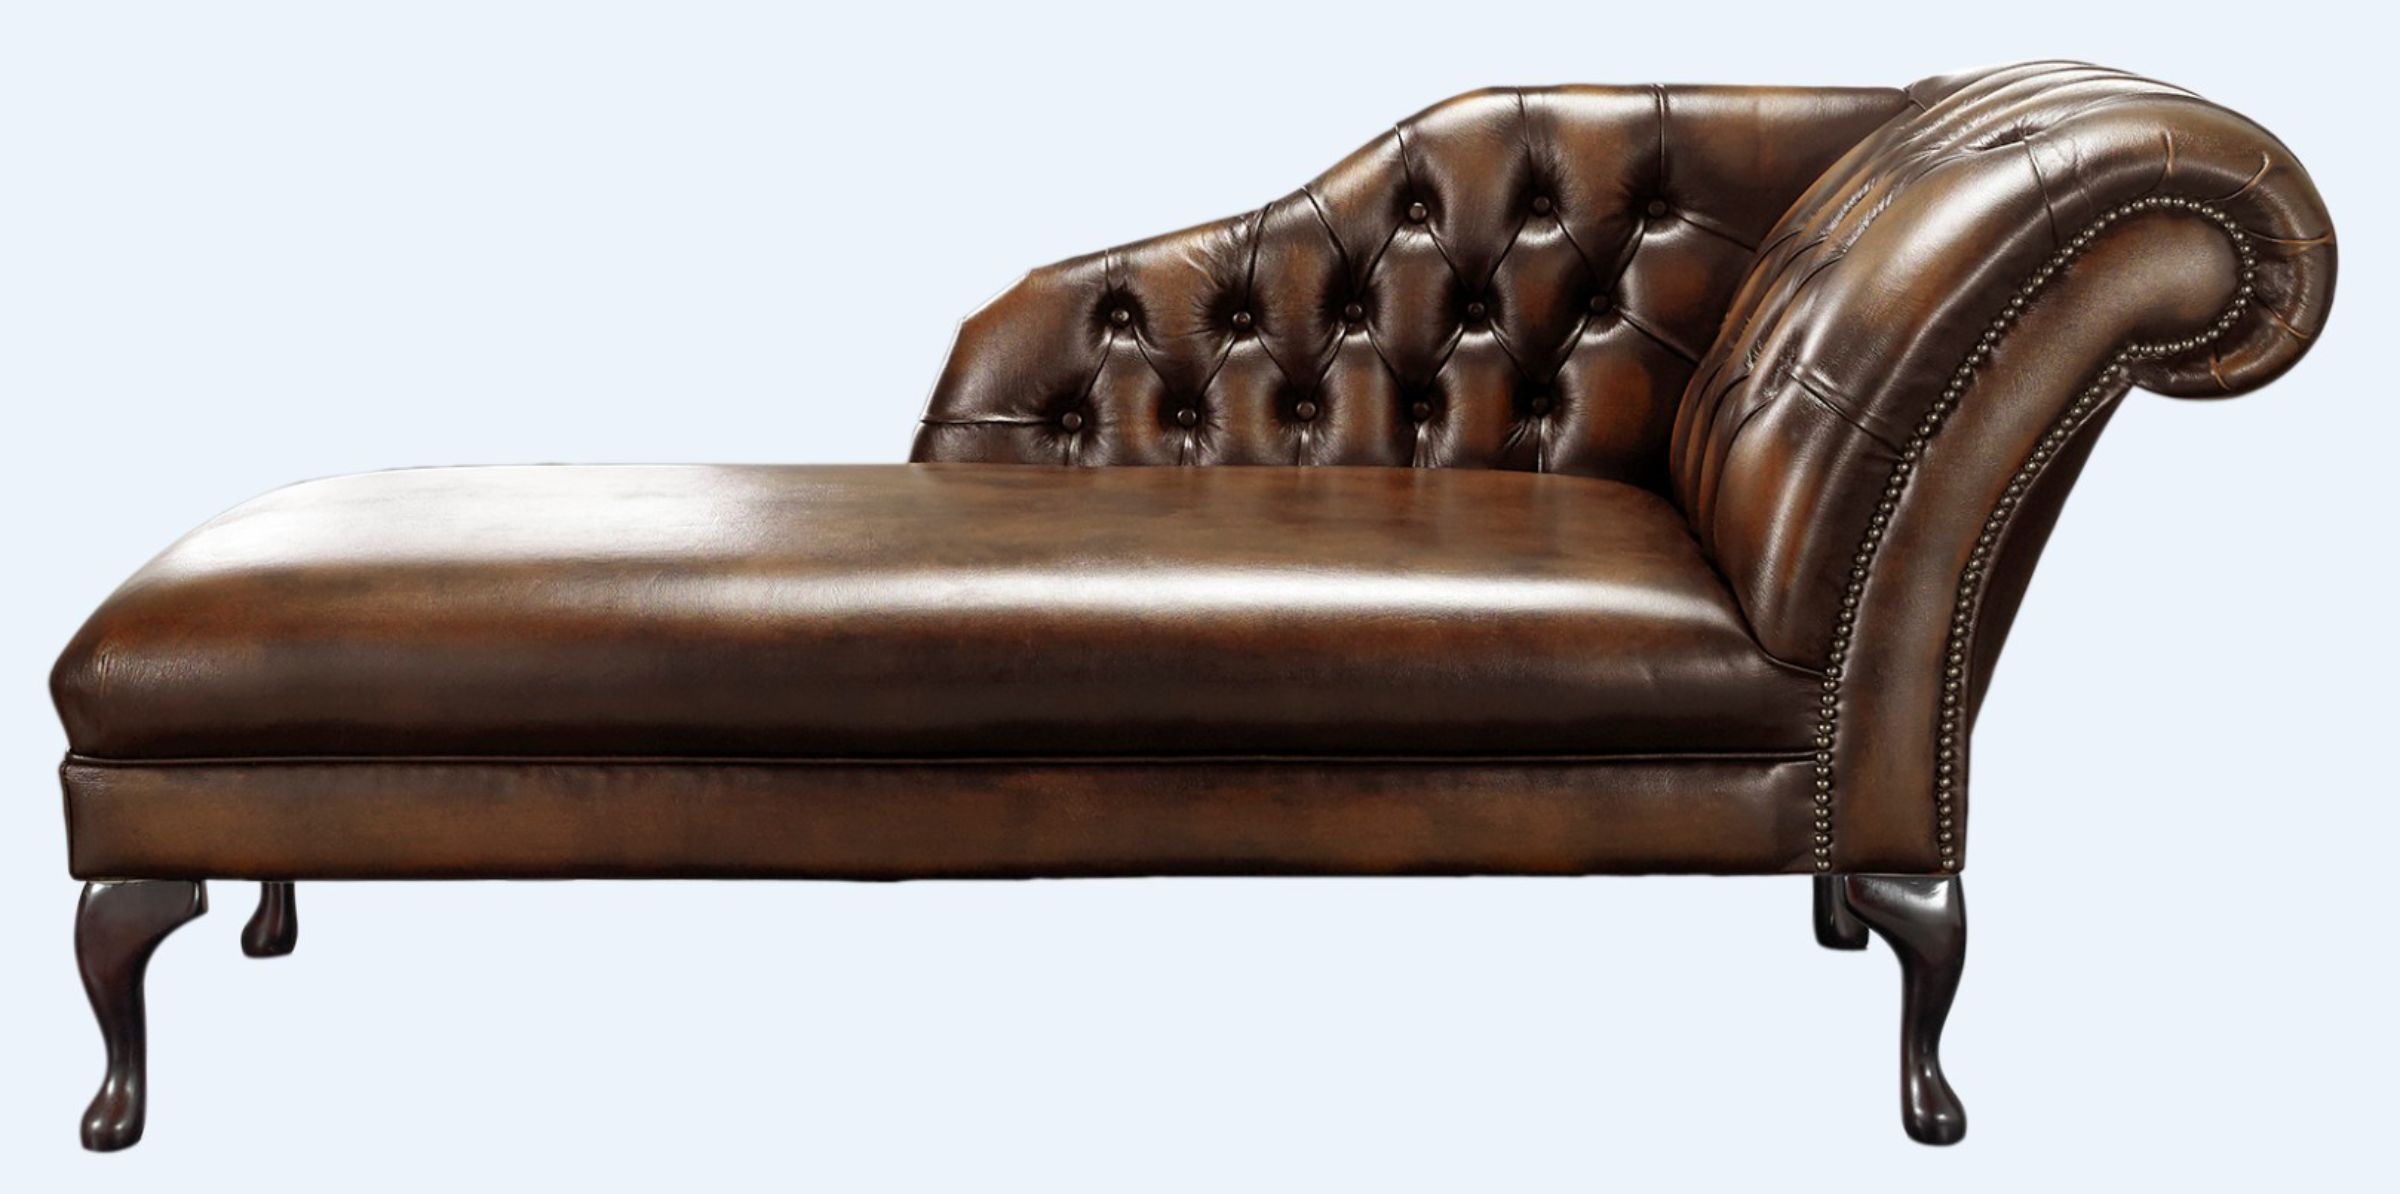 Autumn tan chesterfield chaise lounge day bed for Chaise chesterfield